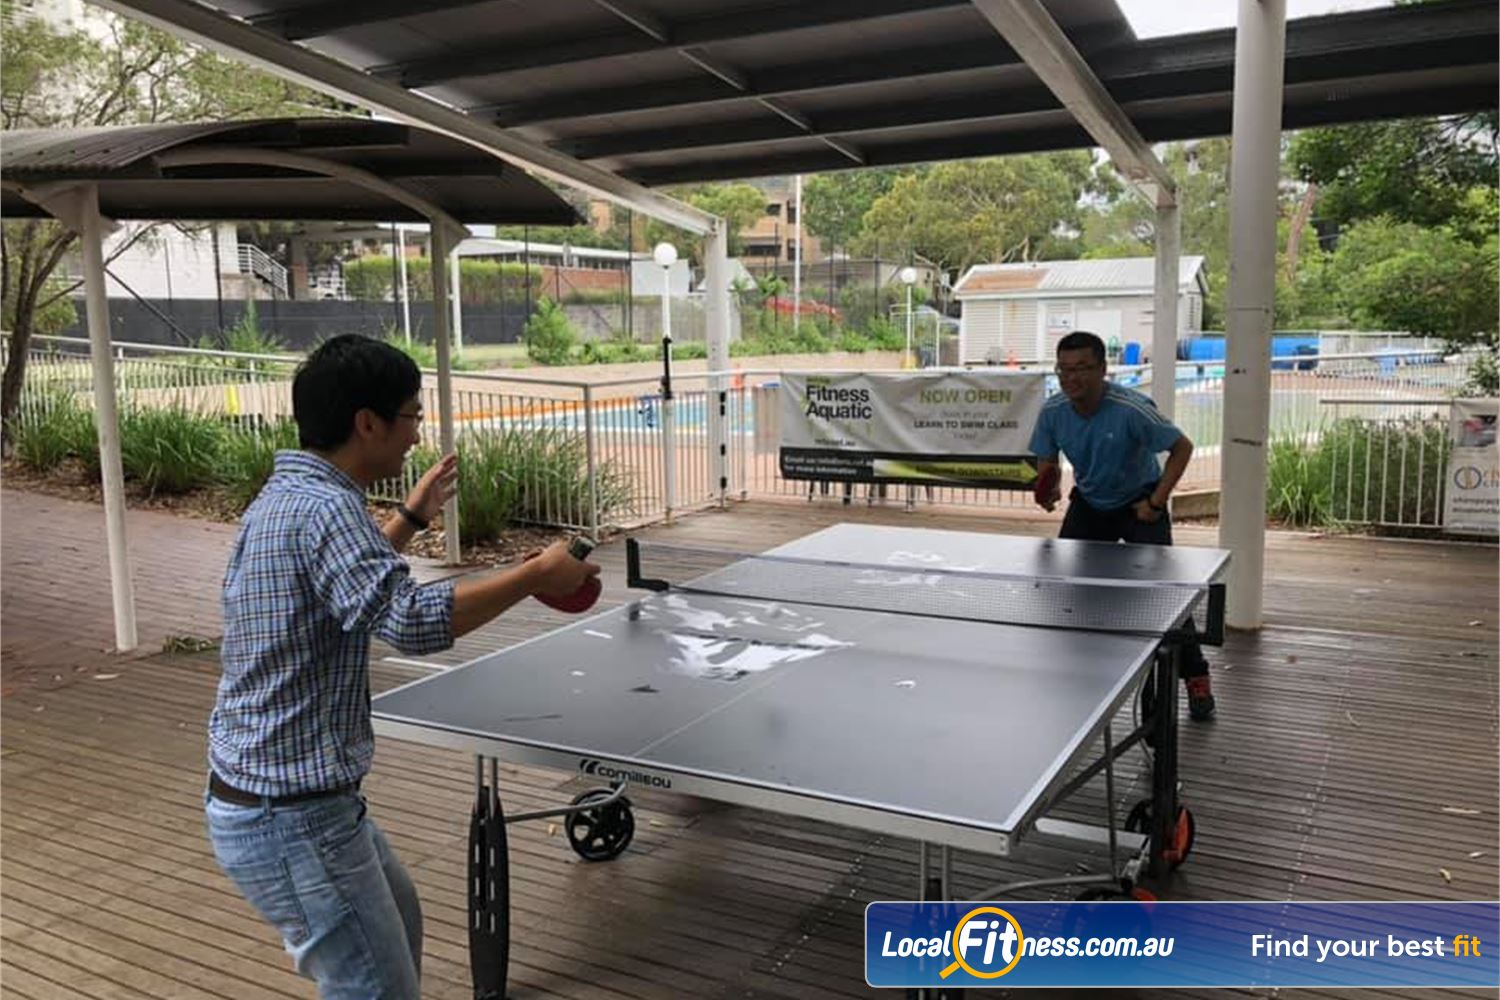 North Ryde Fitness & Aquatic North Ryde Challenge your friends with a friendly table tennis match.